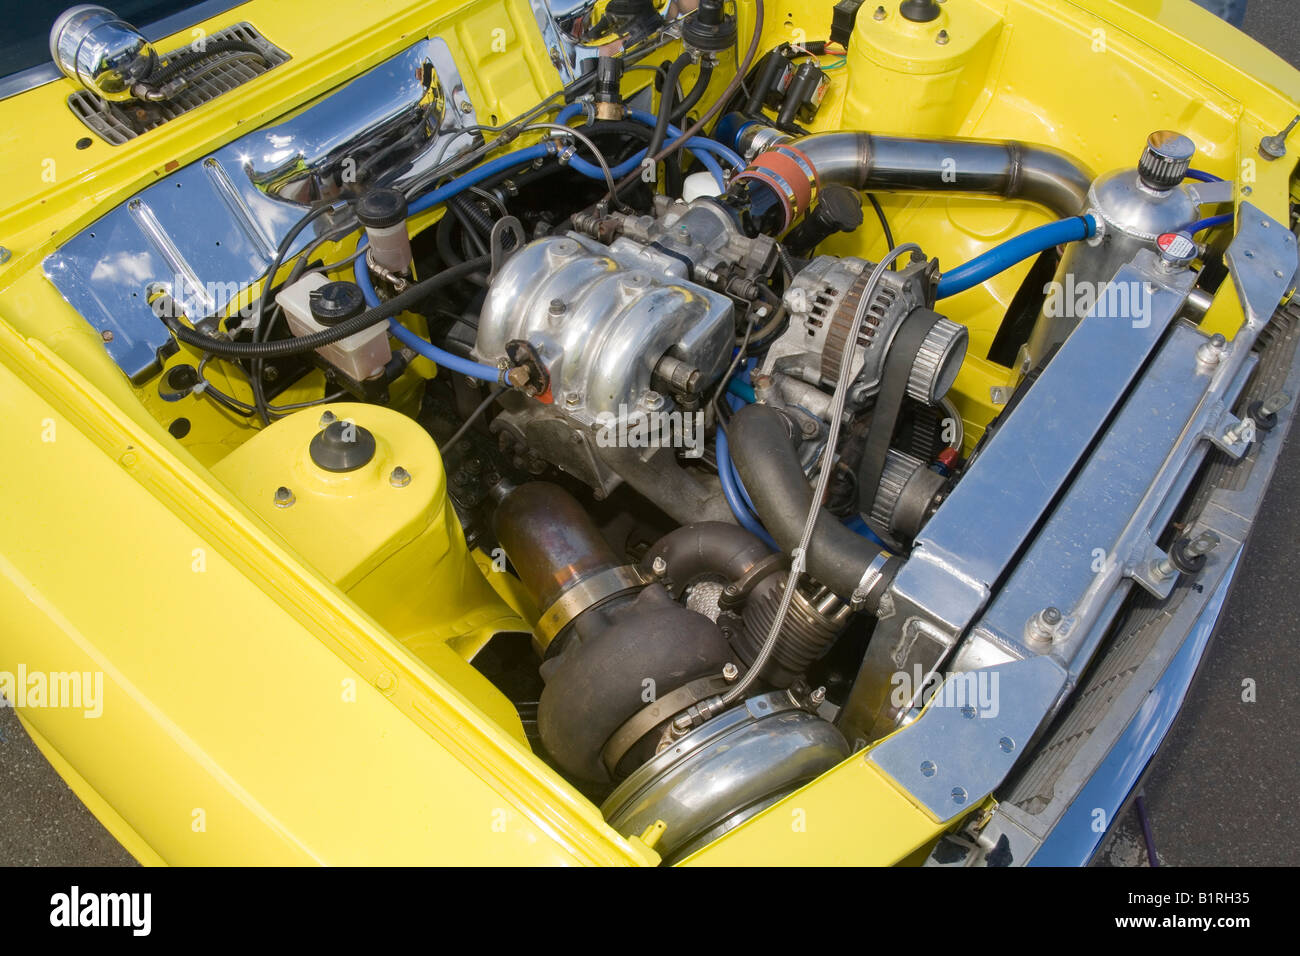 Heavily modified and turbocharged Mazda rotary 13B engine as used ...